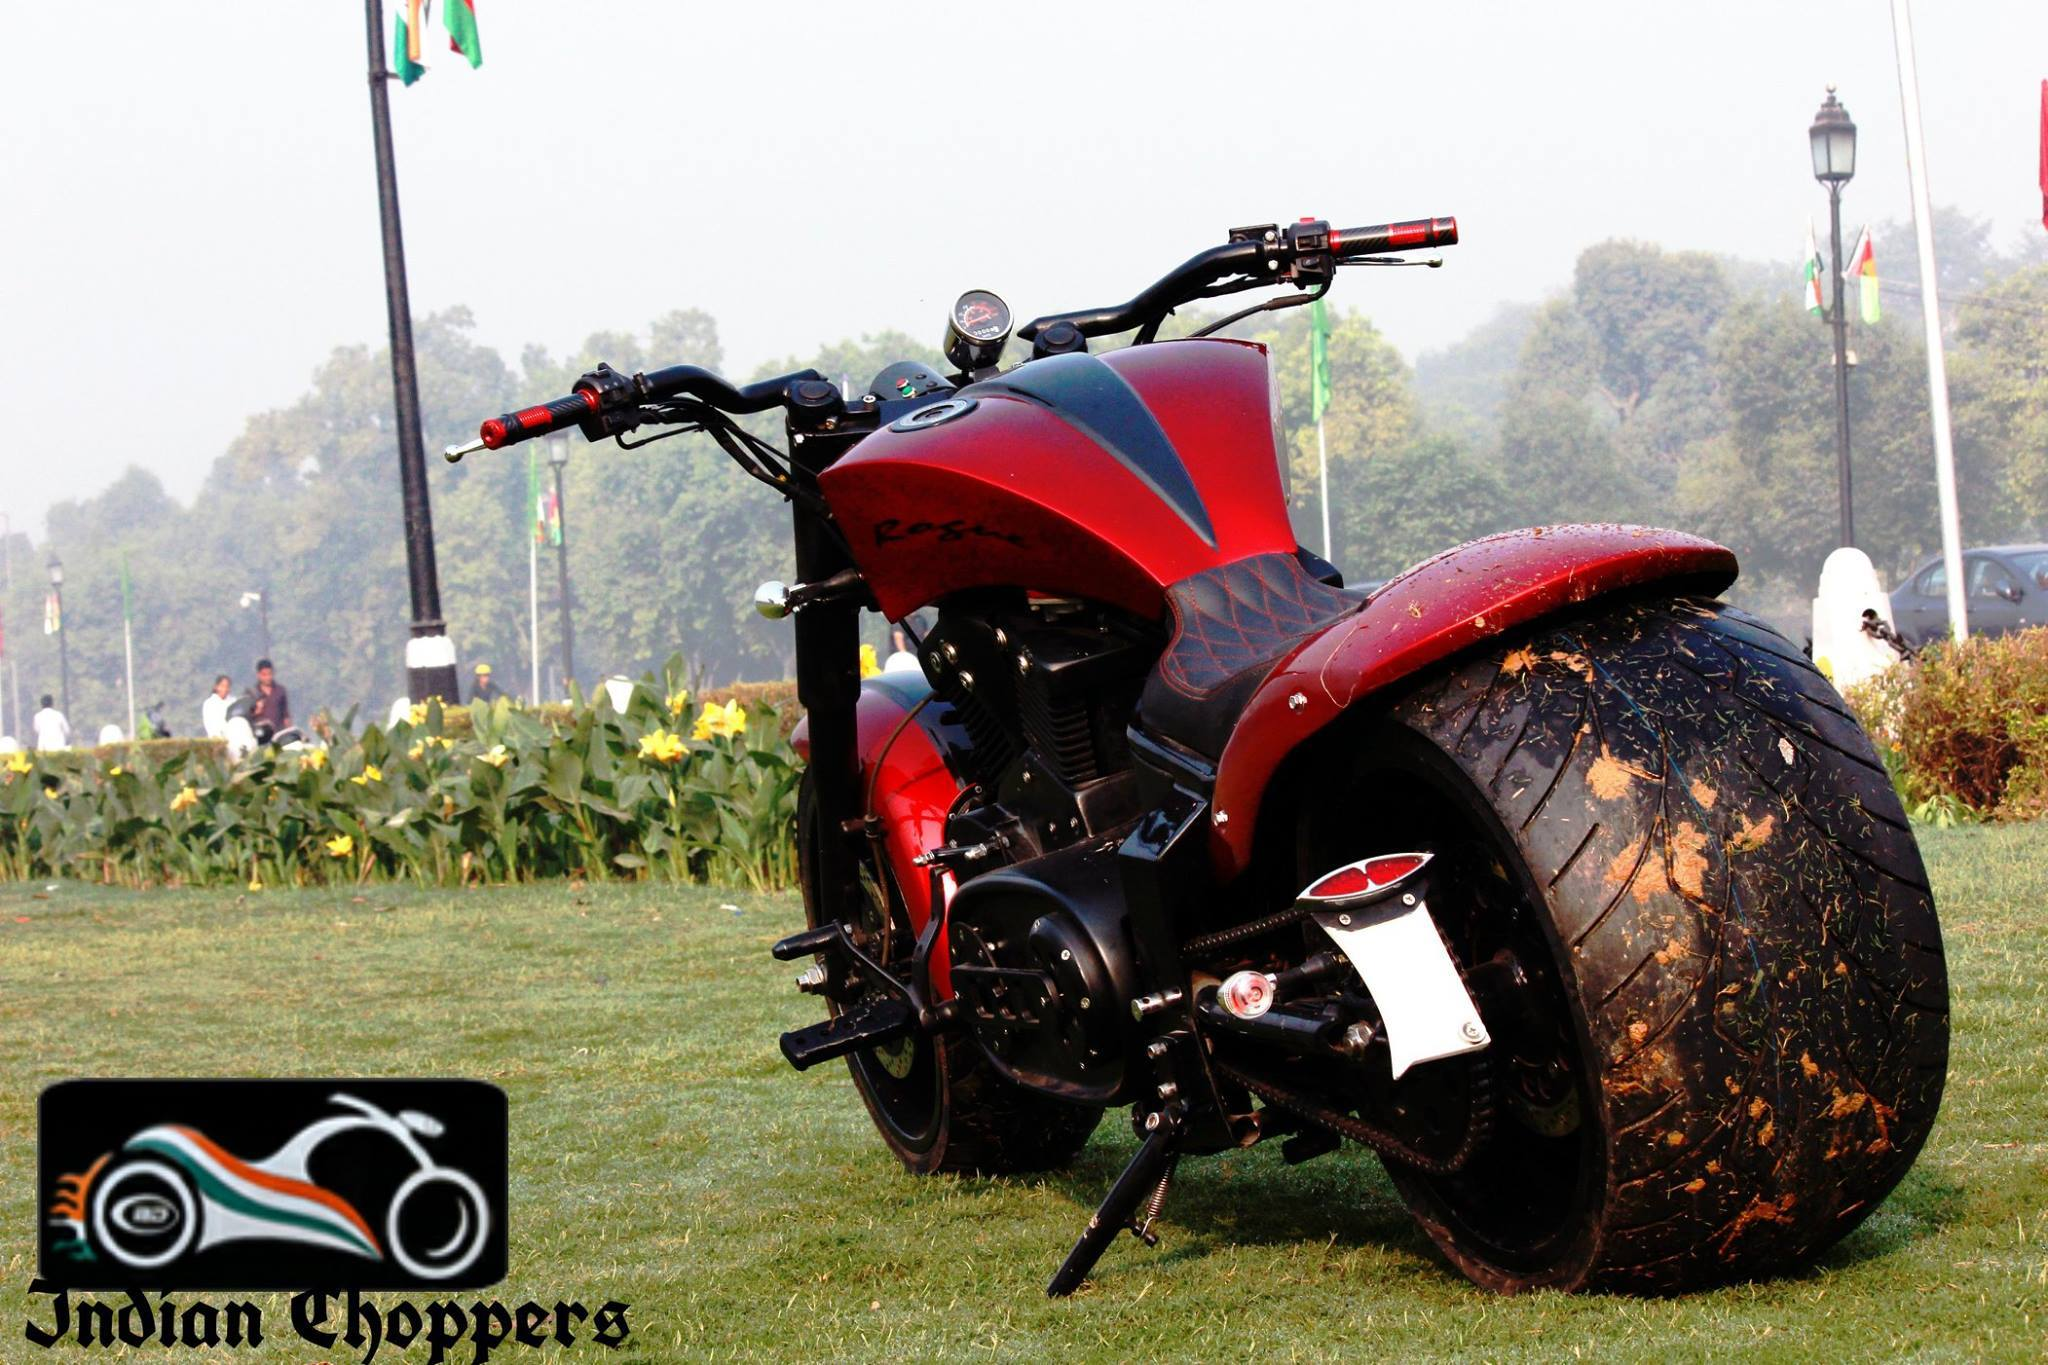 Top 20 Custom Bike Modifiers In India Bikes Maxabout Forum